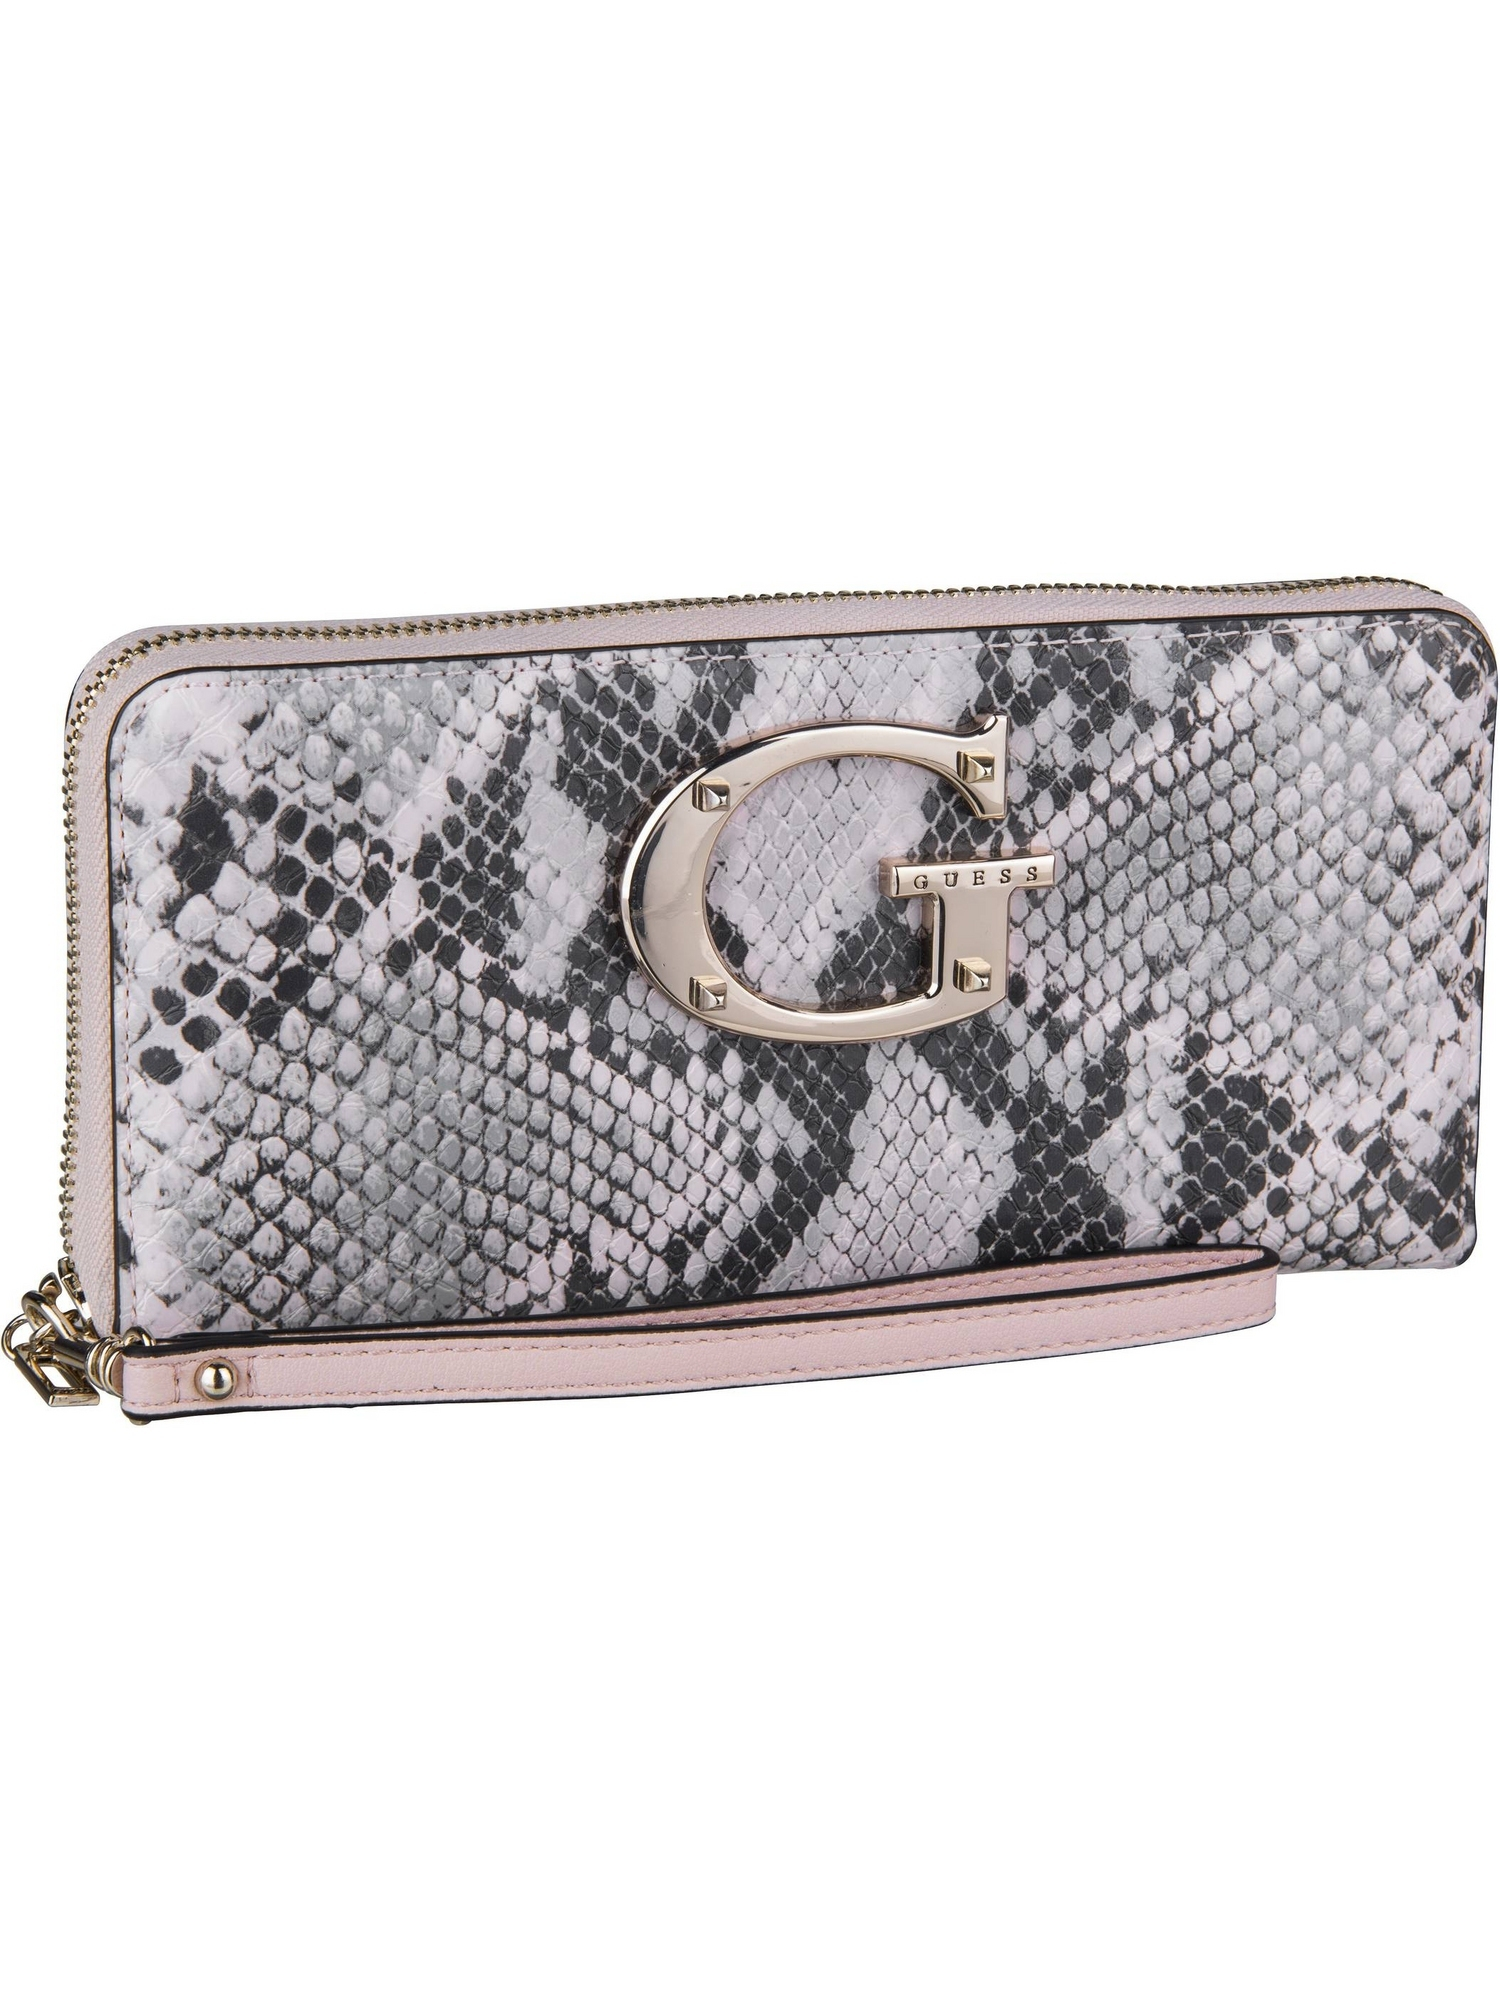 Guess: Camila SLG Large Zip Around